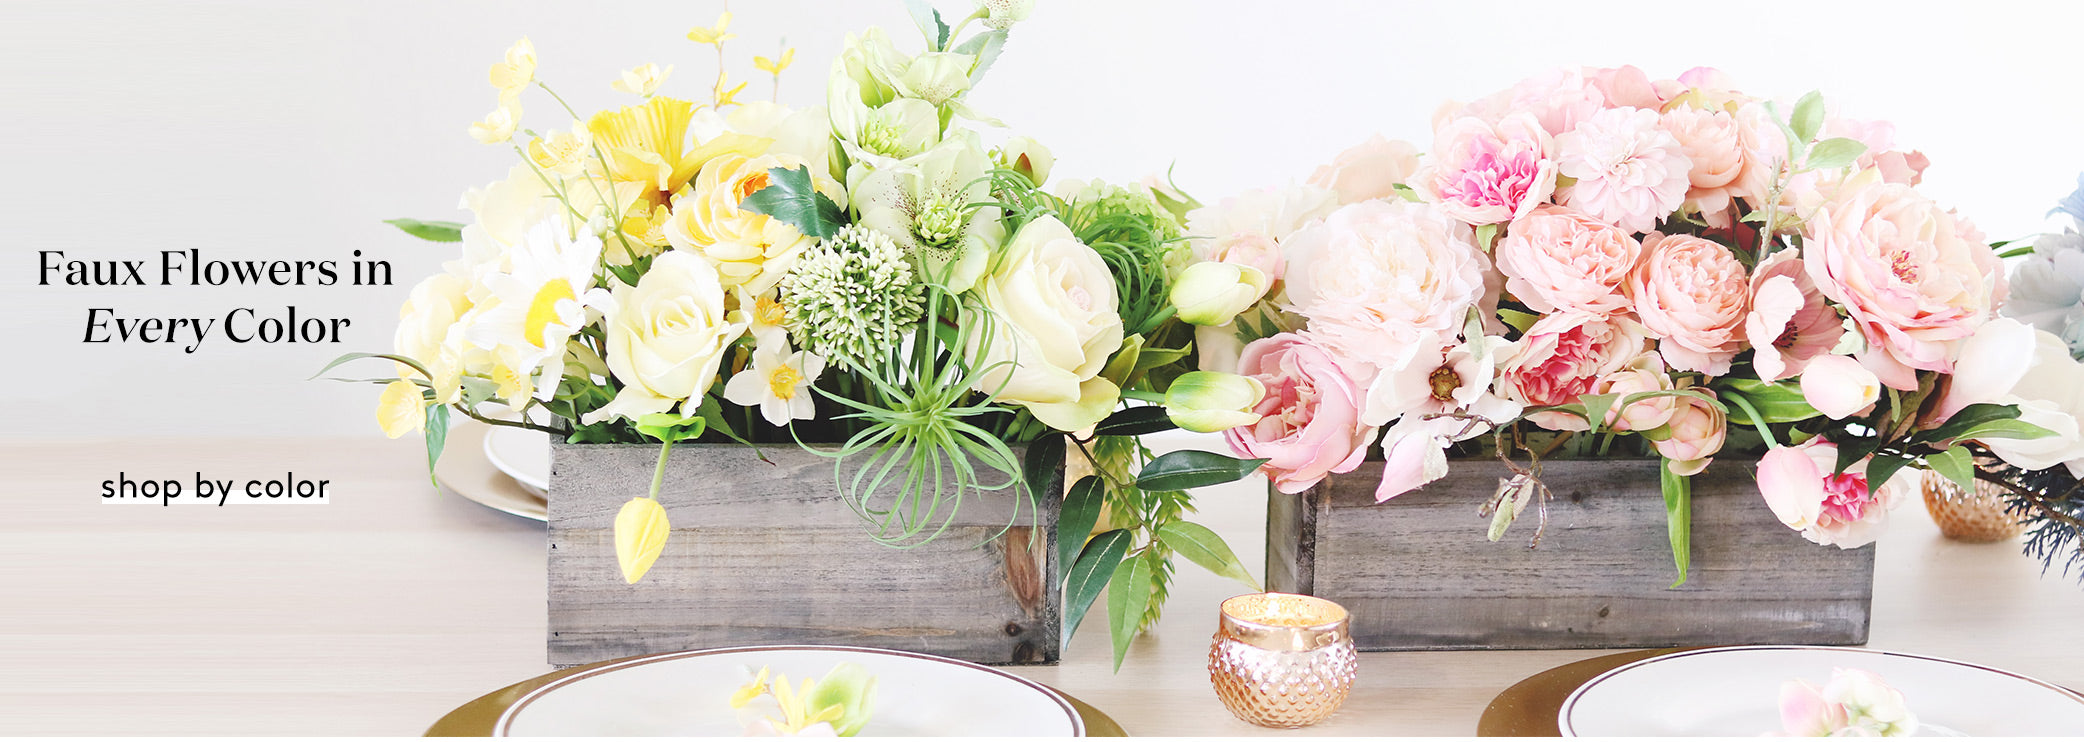 Artificial Flowers in Every Color | Fake Flowers by Color